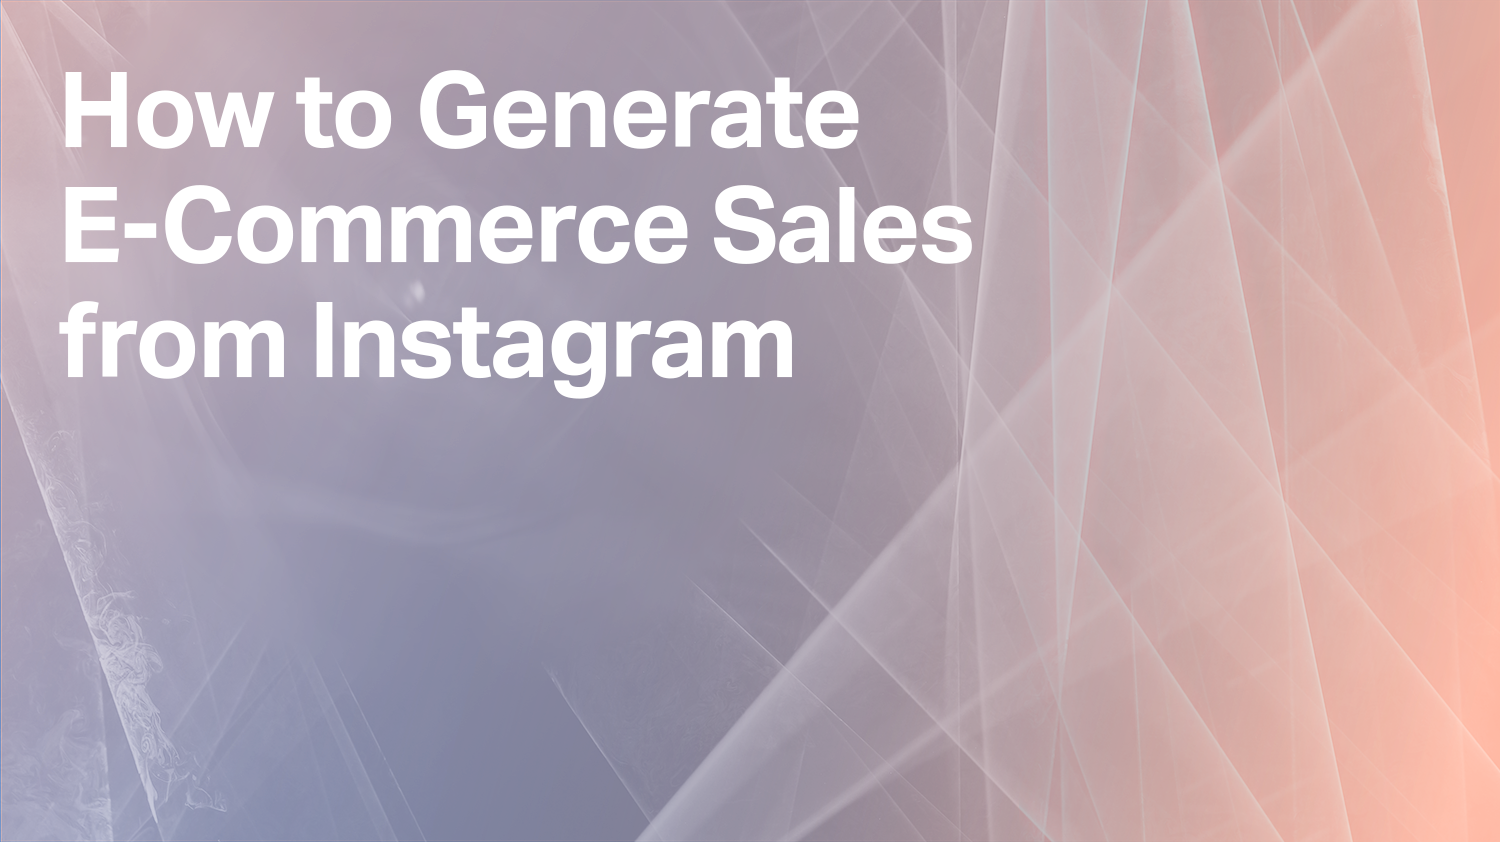 How to Generate E-Commerce Sales from Instagram